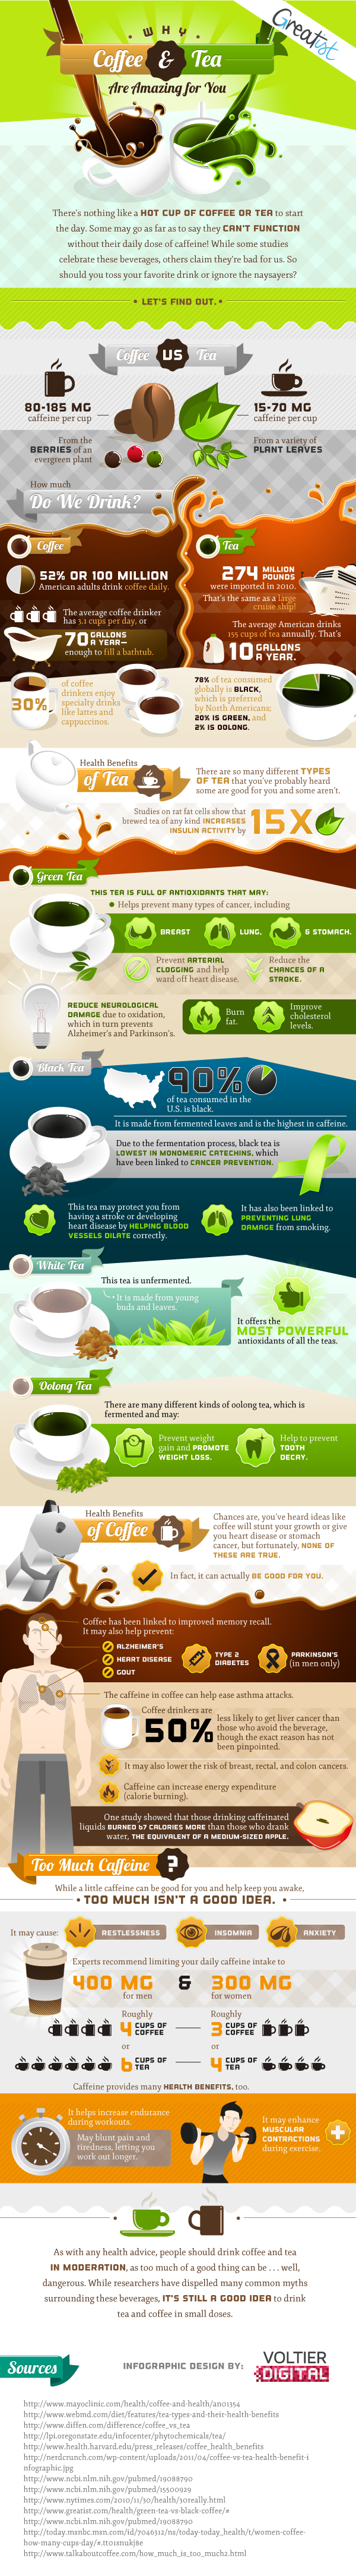 Beneficios del café y el té - #infografia / Why coffee and tea are amazing for you? - #infographic